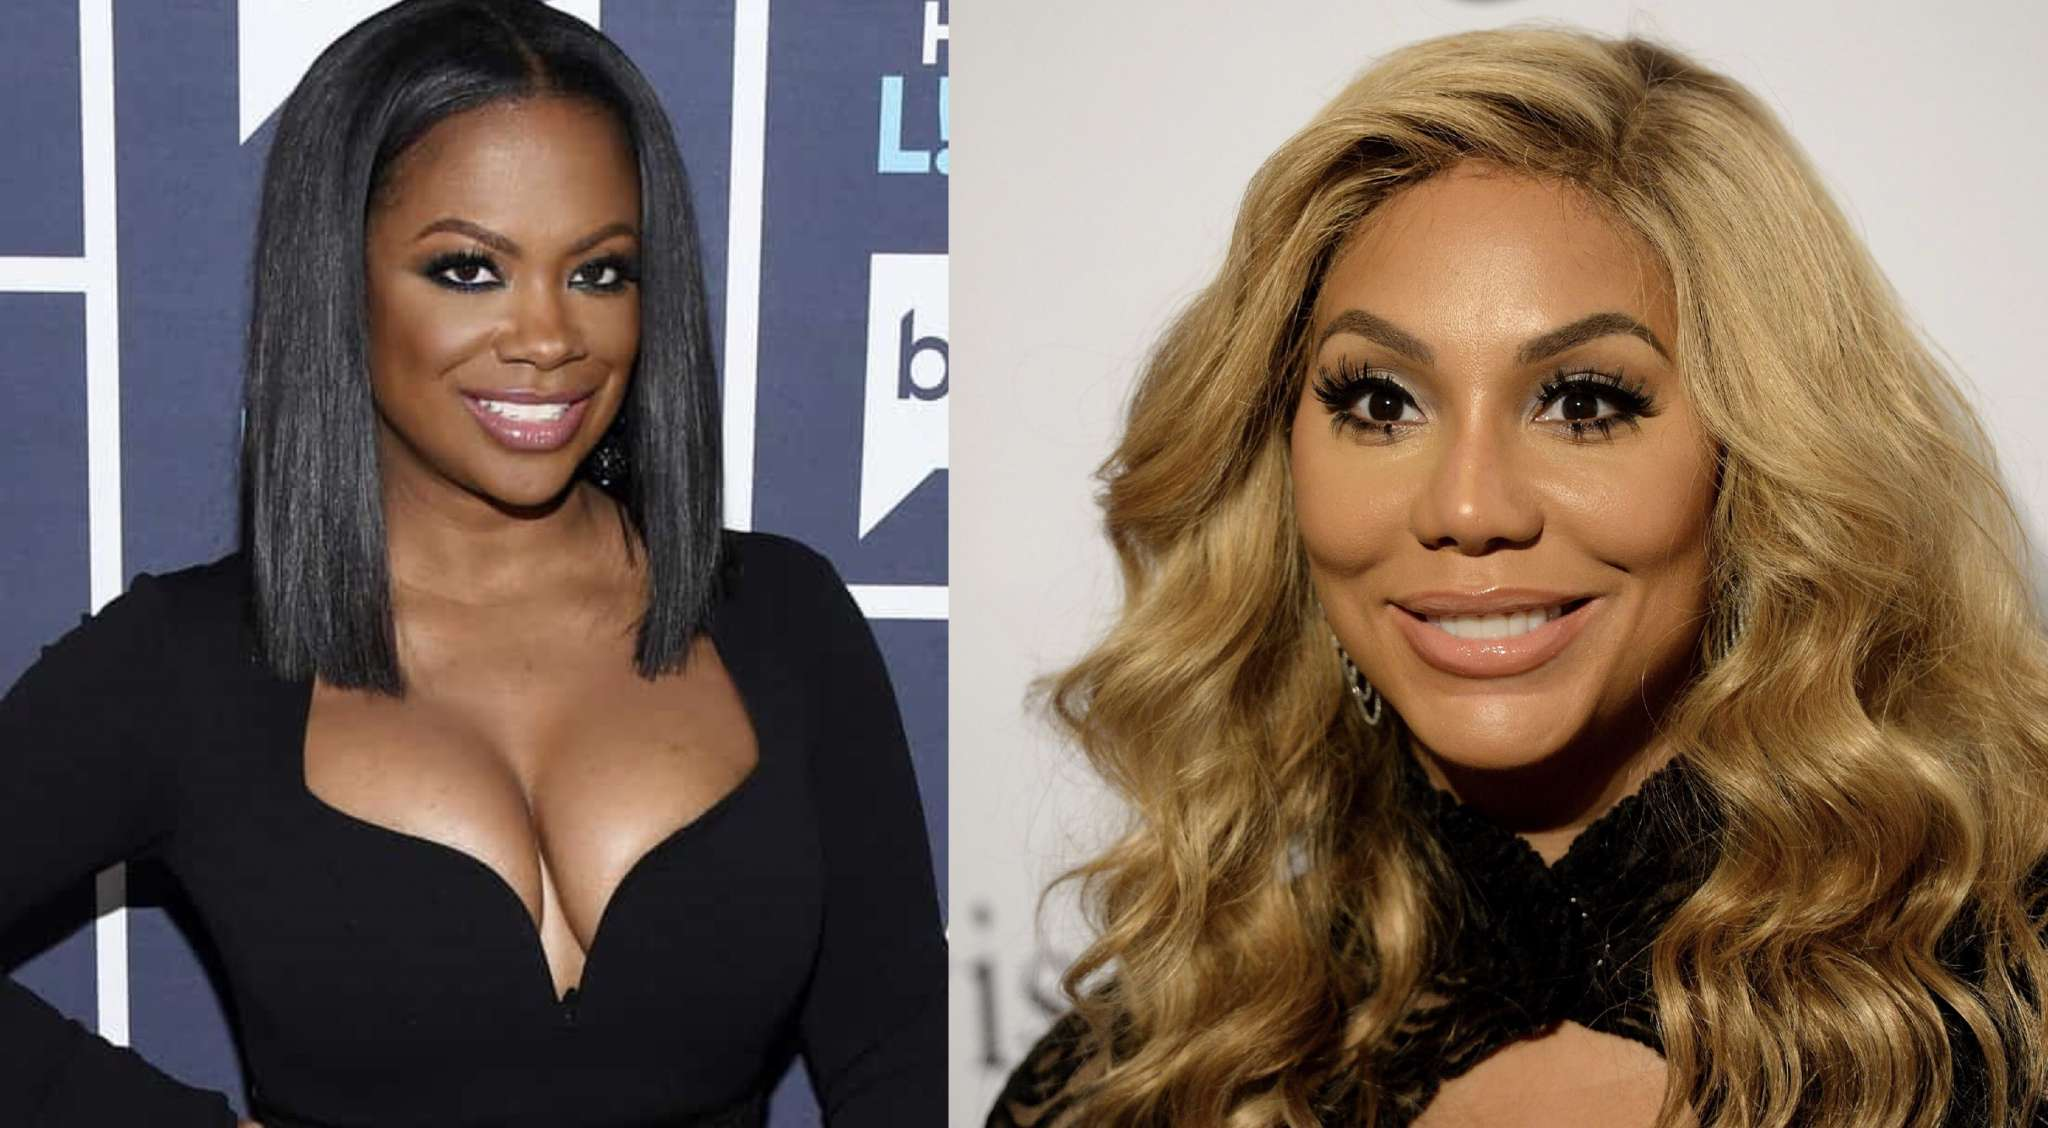 tamar-braxton-makes-fans-laugh-checking-on-her-summer-body-progress-kandi-burruss-says-shes-in-the-same-situation